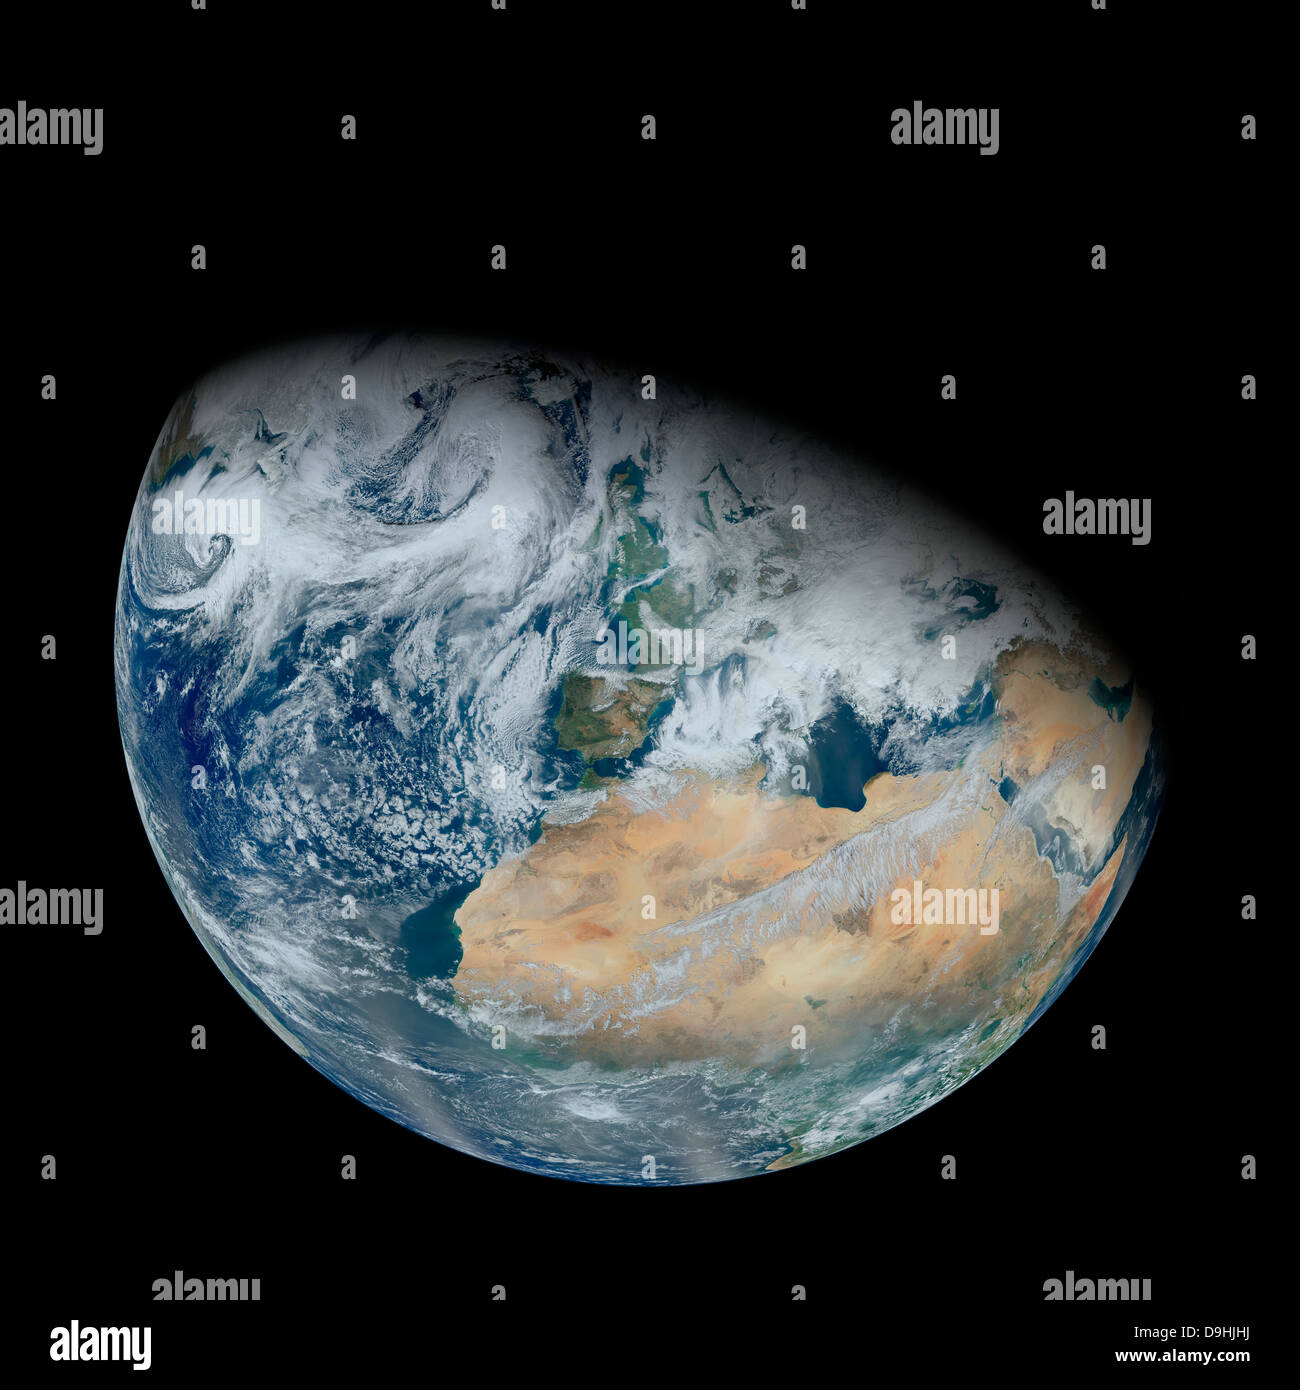 February 3, 2012 - Synthesized view of Earth showing North Africa and southwestern Europe. - Stock Image